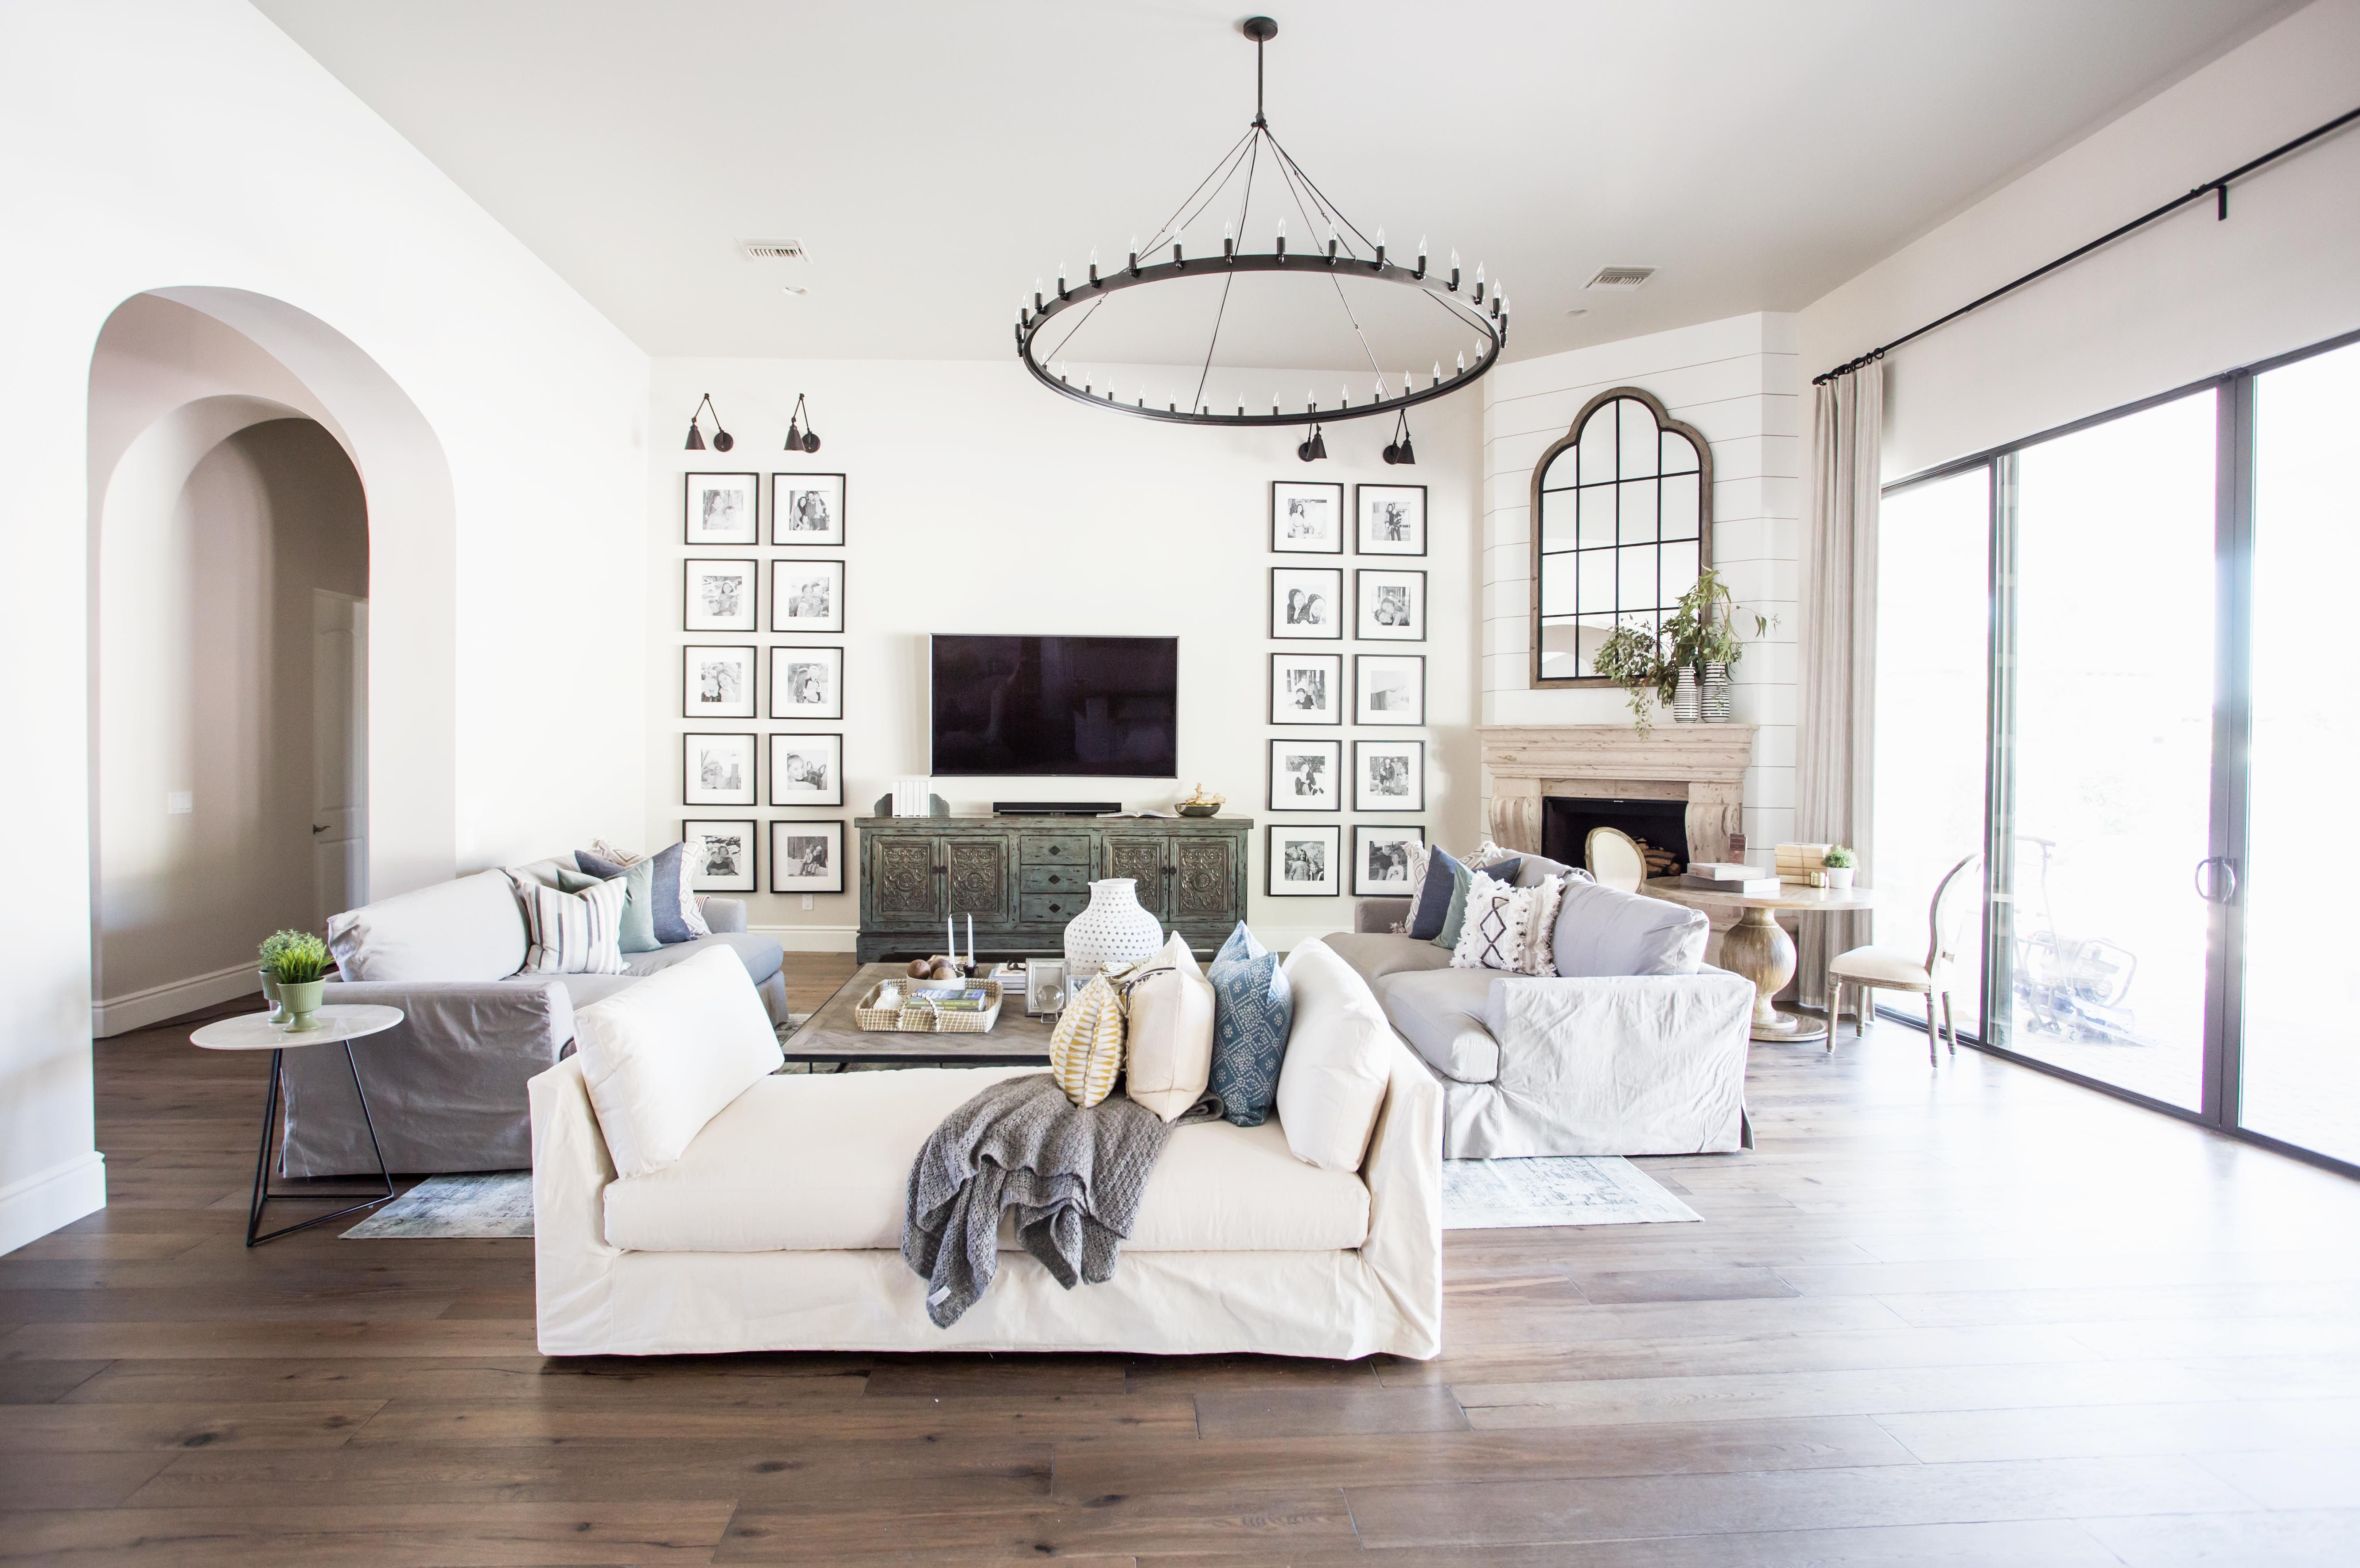 Santa Barbara Style Home The Lifestyled Company Scorpio Place Project Scorpioplaceproject Black And White Gallery Wal Home Rustic Consoles Living Room Designs